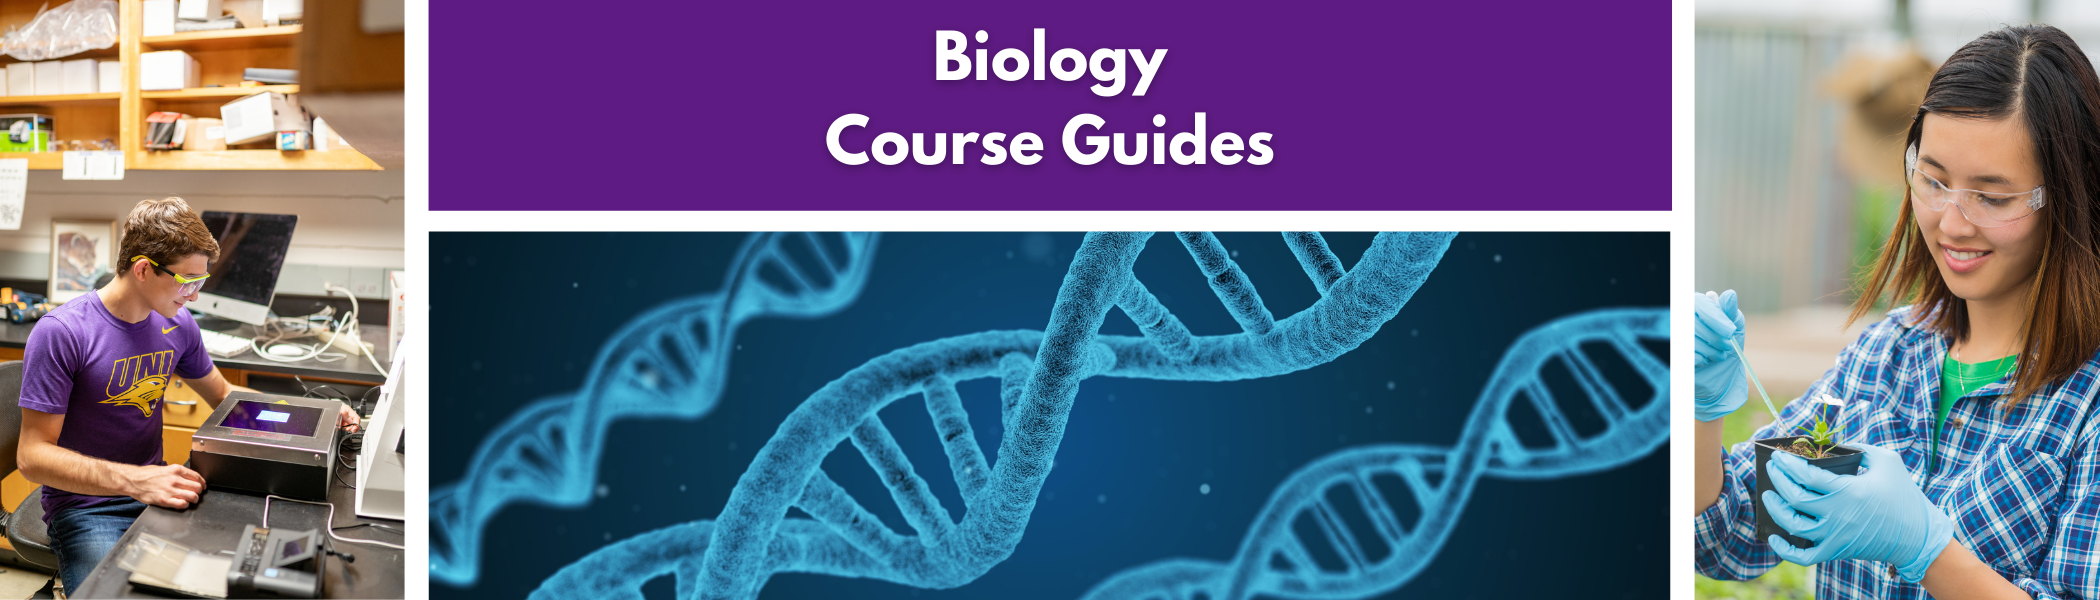 Biology Course Guides